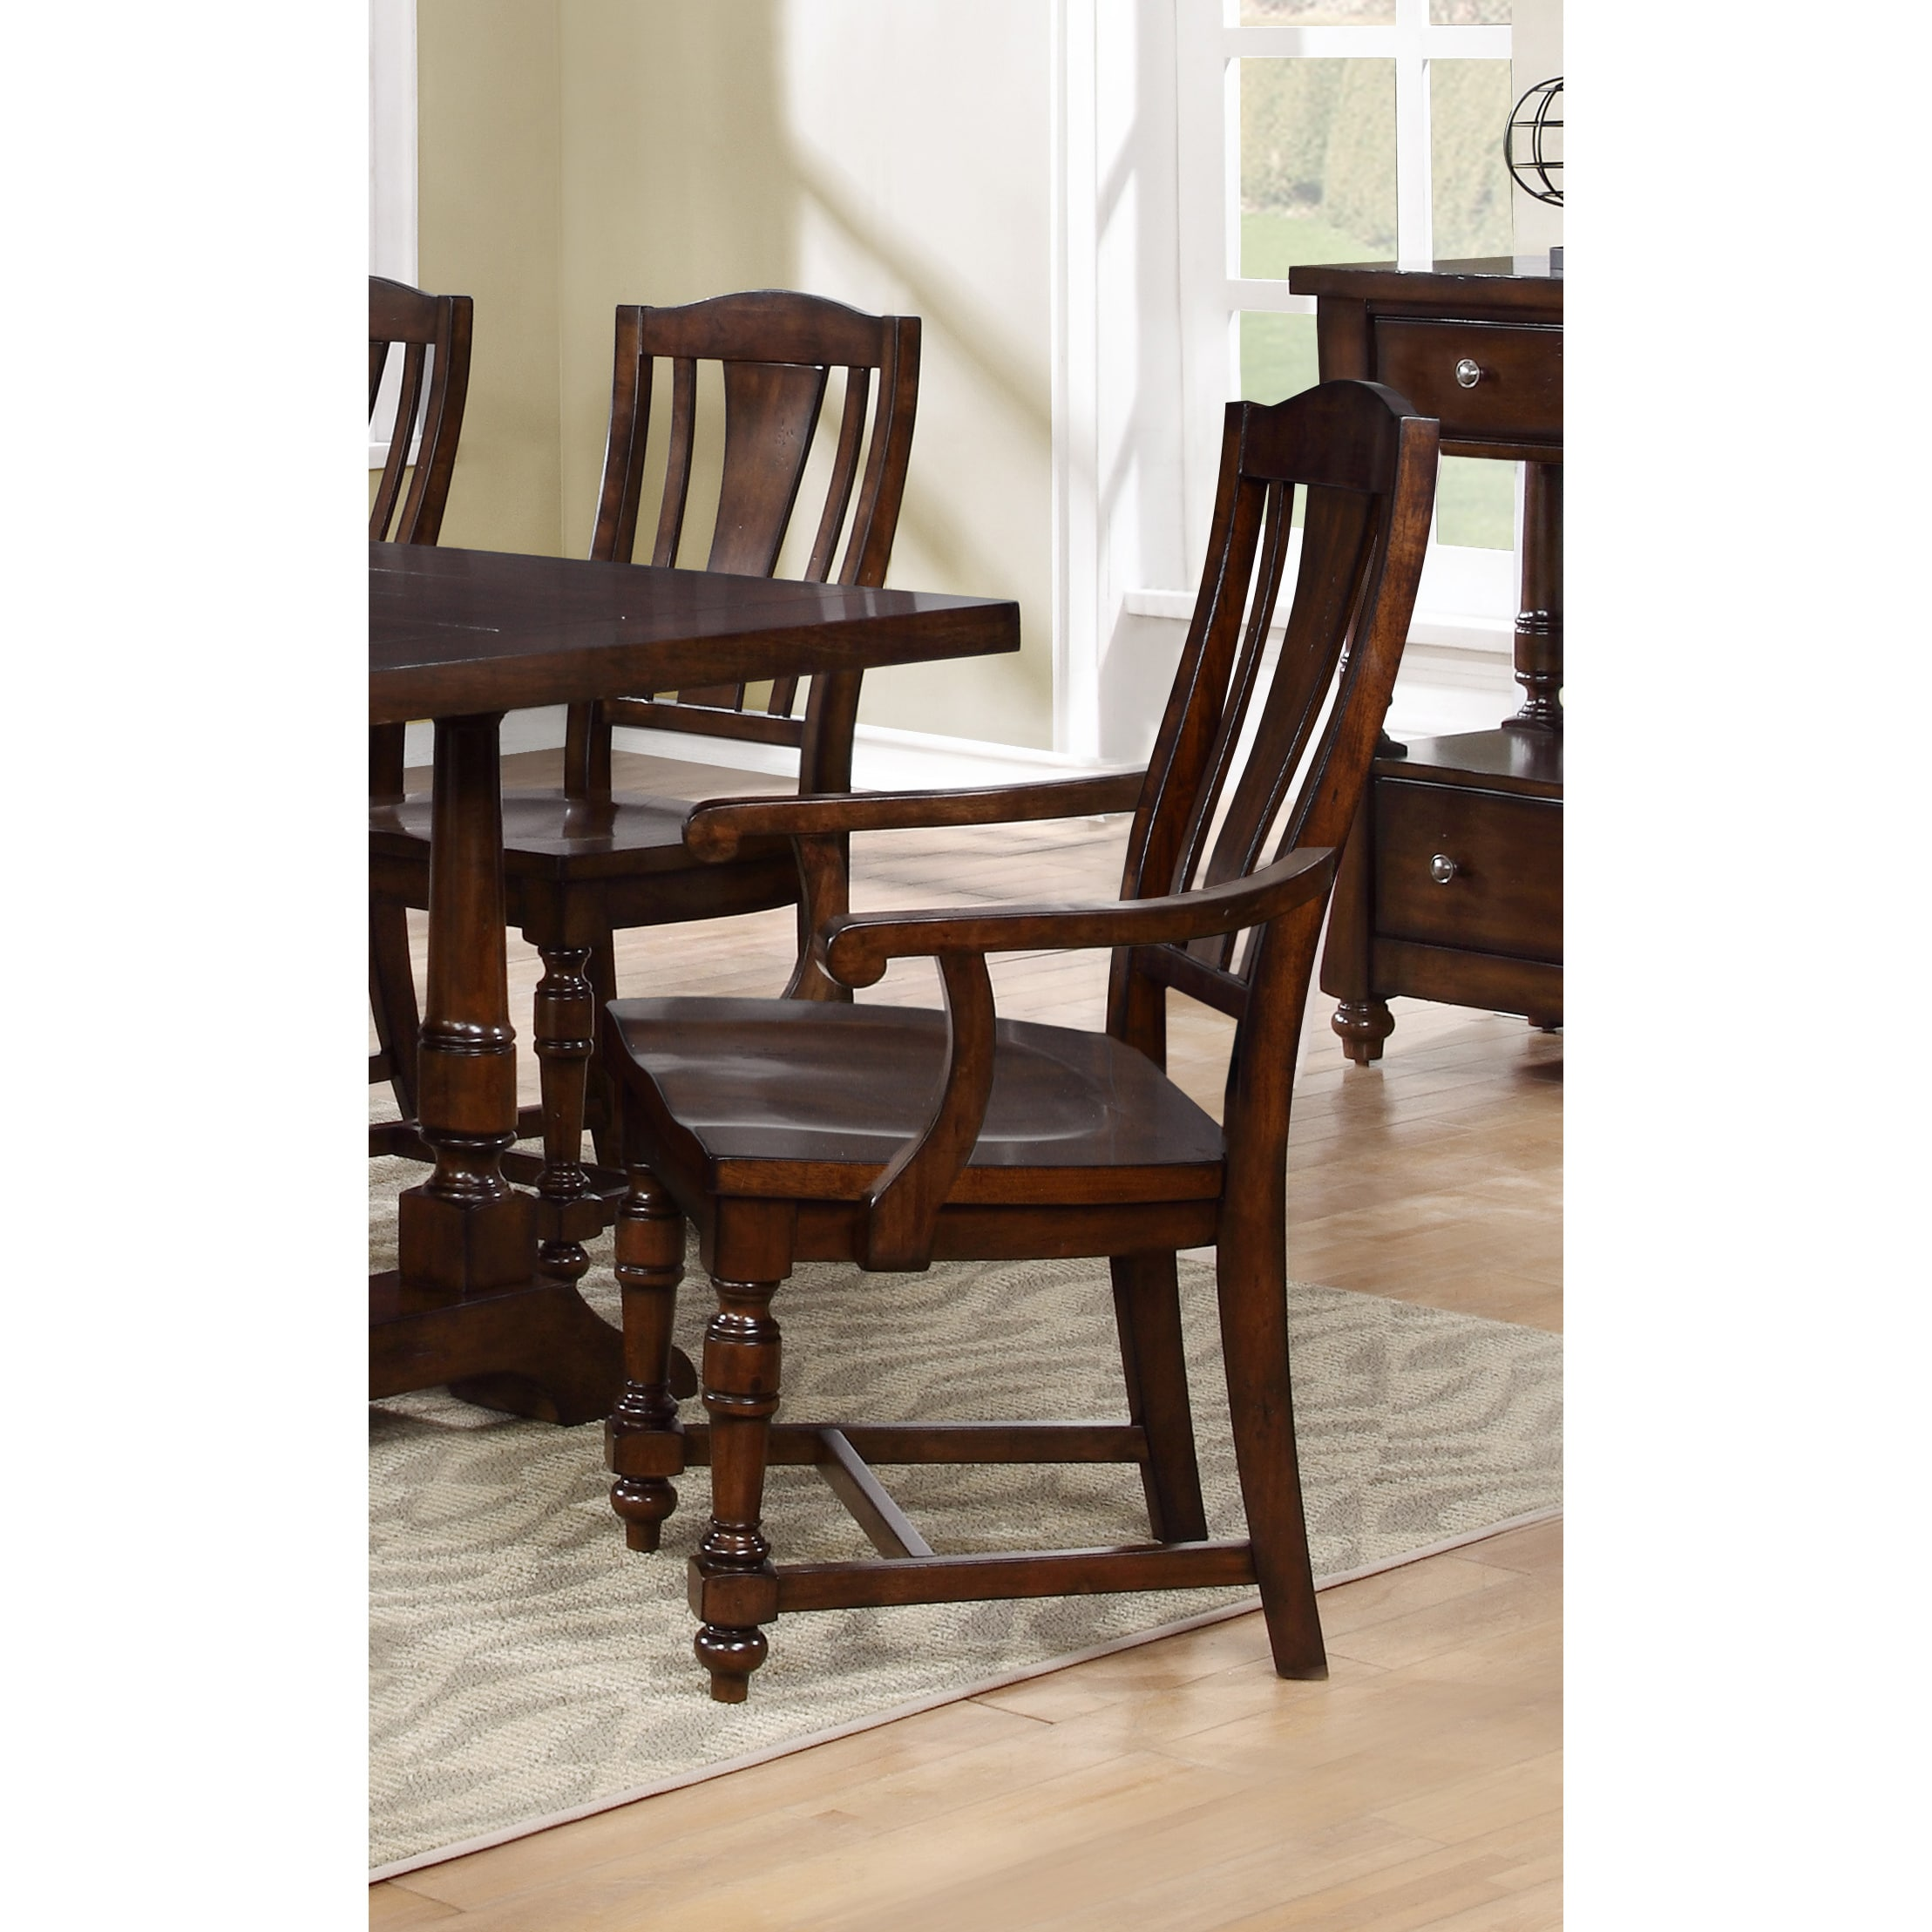 Best Master Furnitures Best Master Furniture D1970 Dining Armchairs (Set of 2) by Overstock